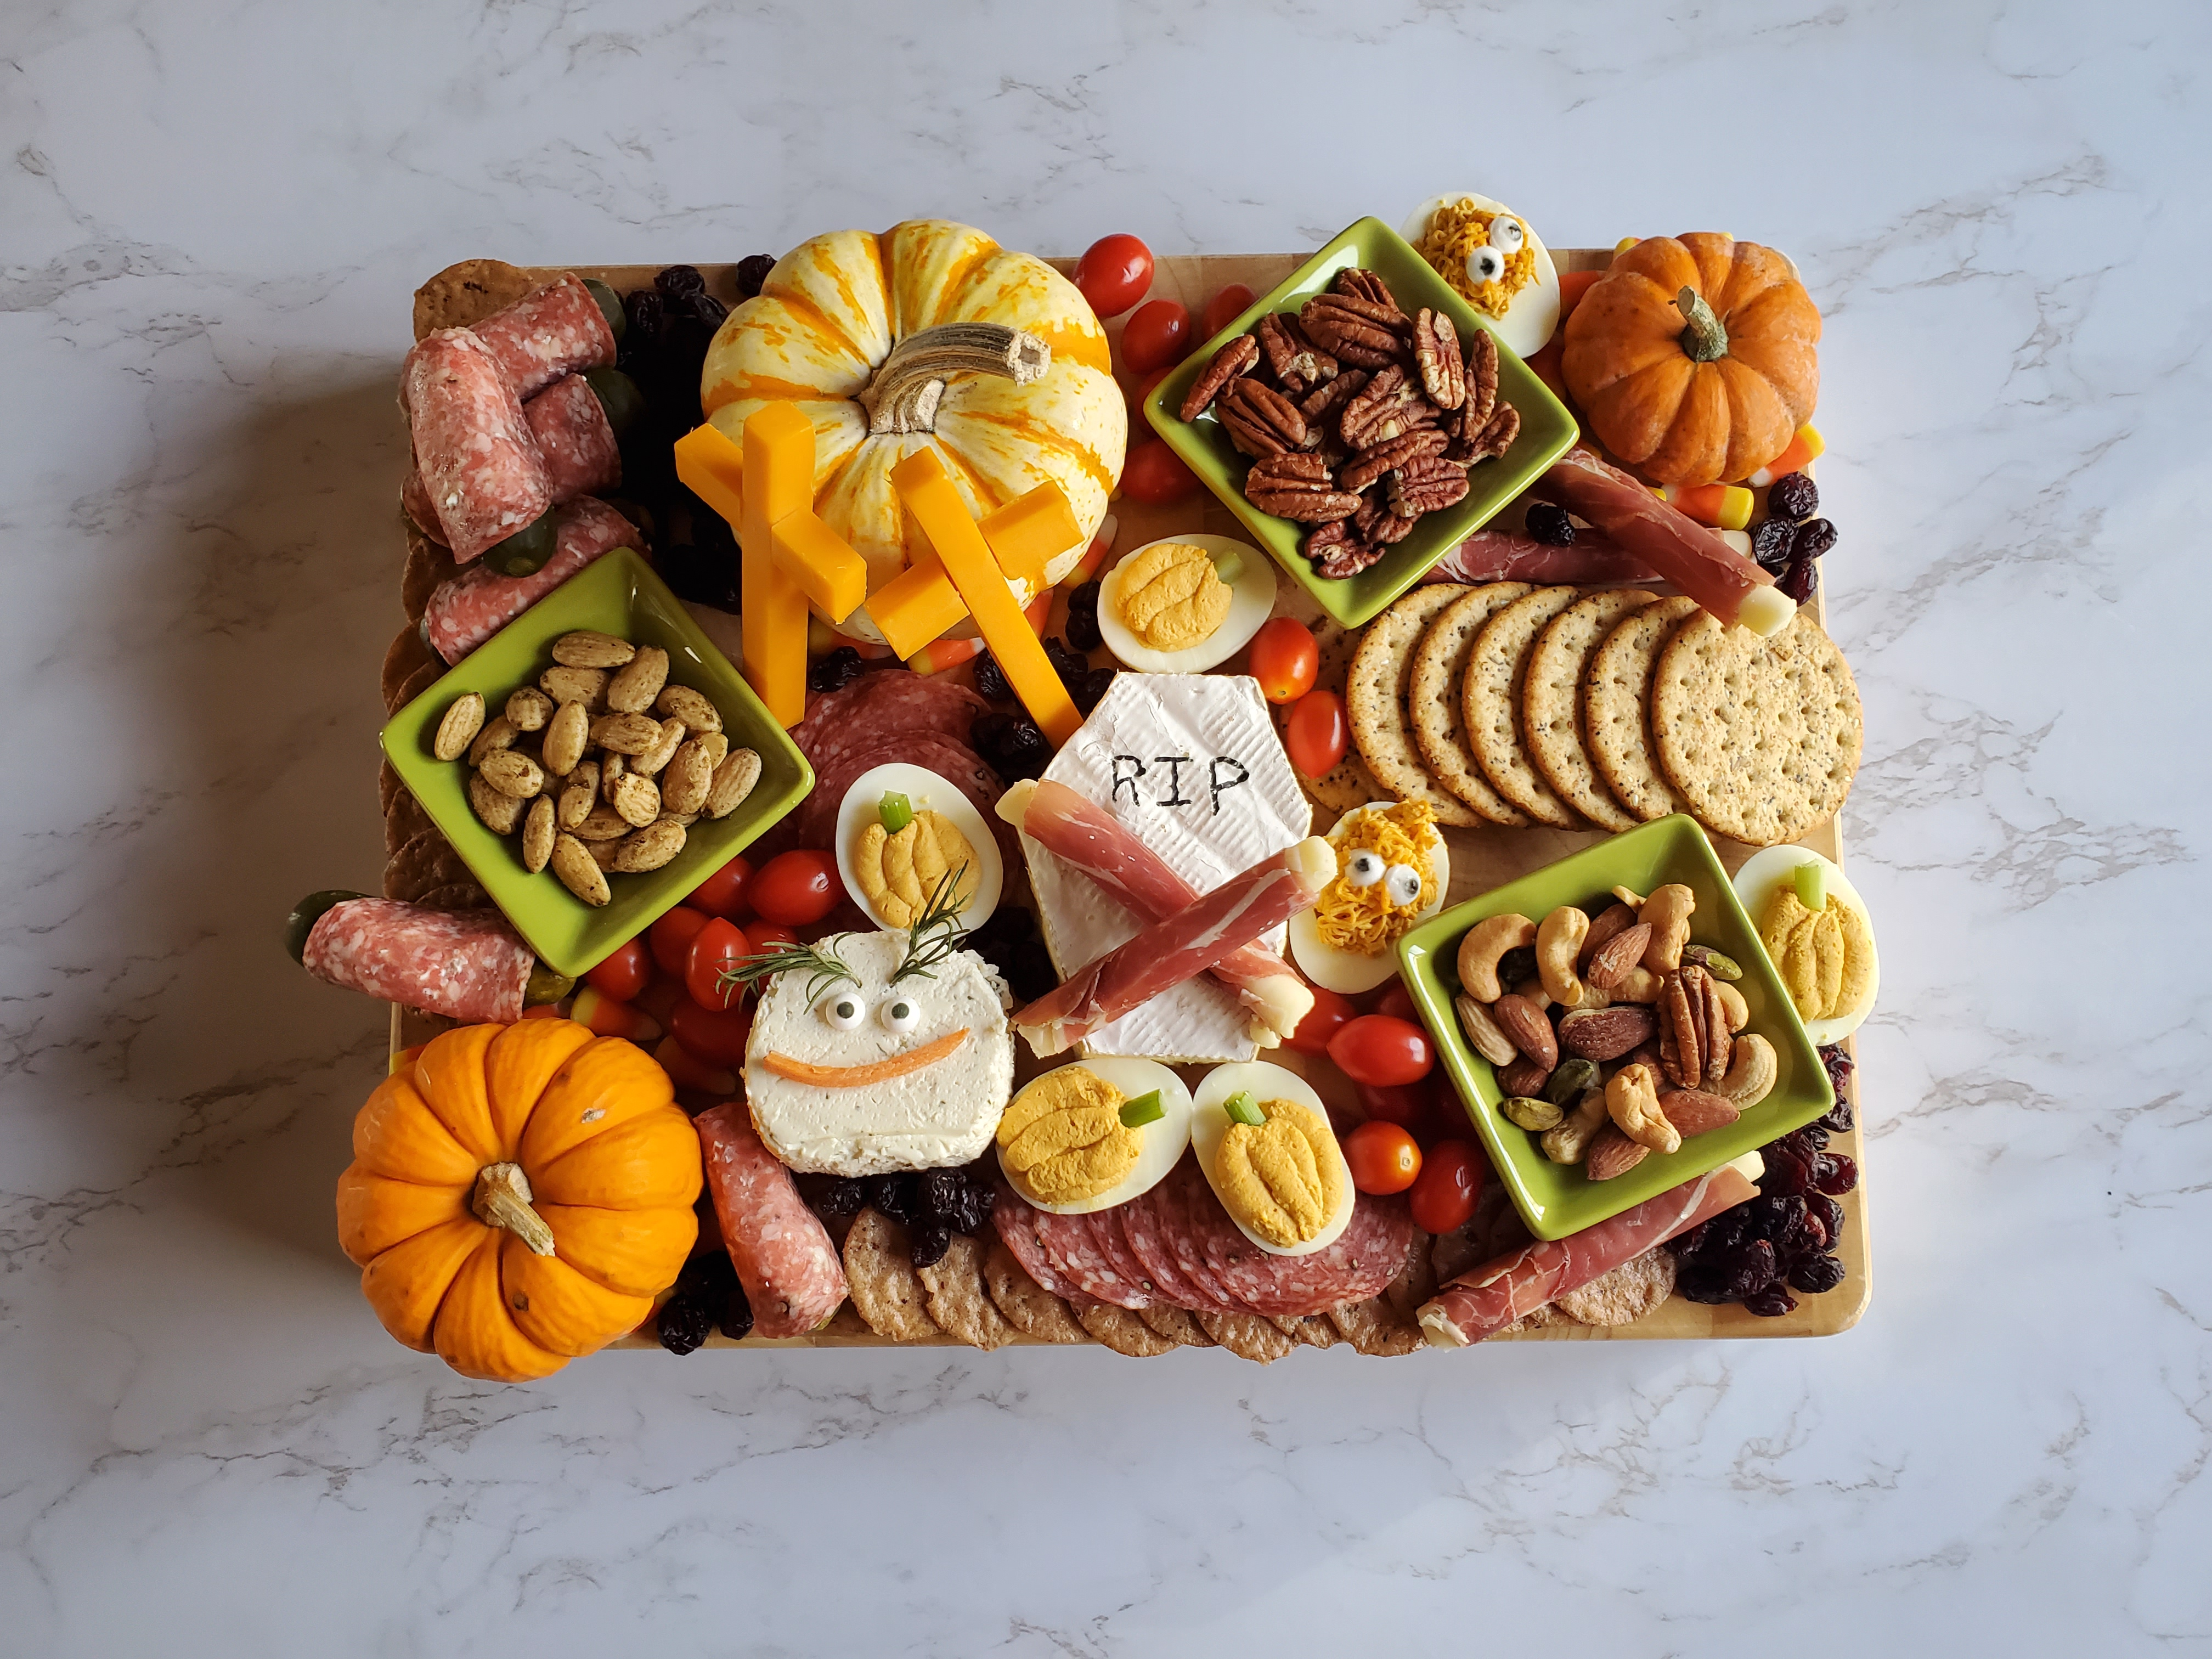 A large charcuterie board filled with a brie tombstone, mini pumpkins, cheese stick crosses, pumpkin deviled eggs, nut, dried meats and grape tomatoes on a marble countertop.